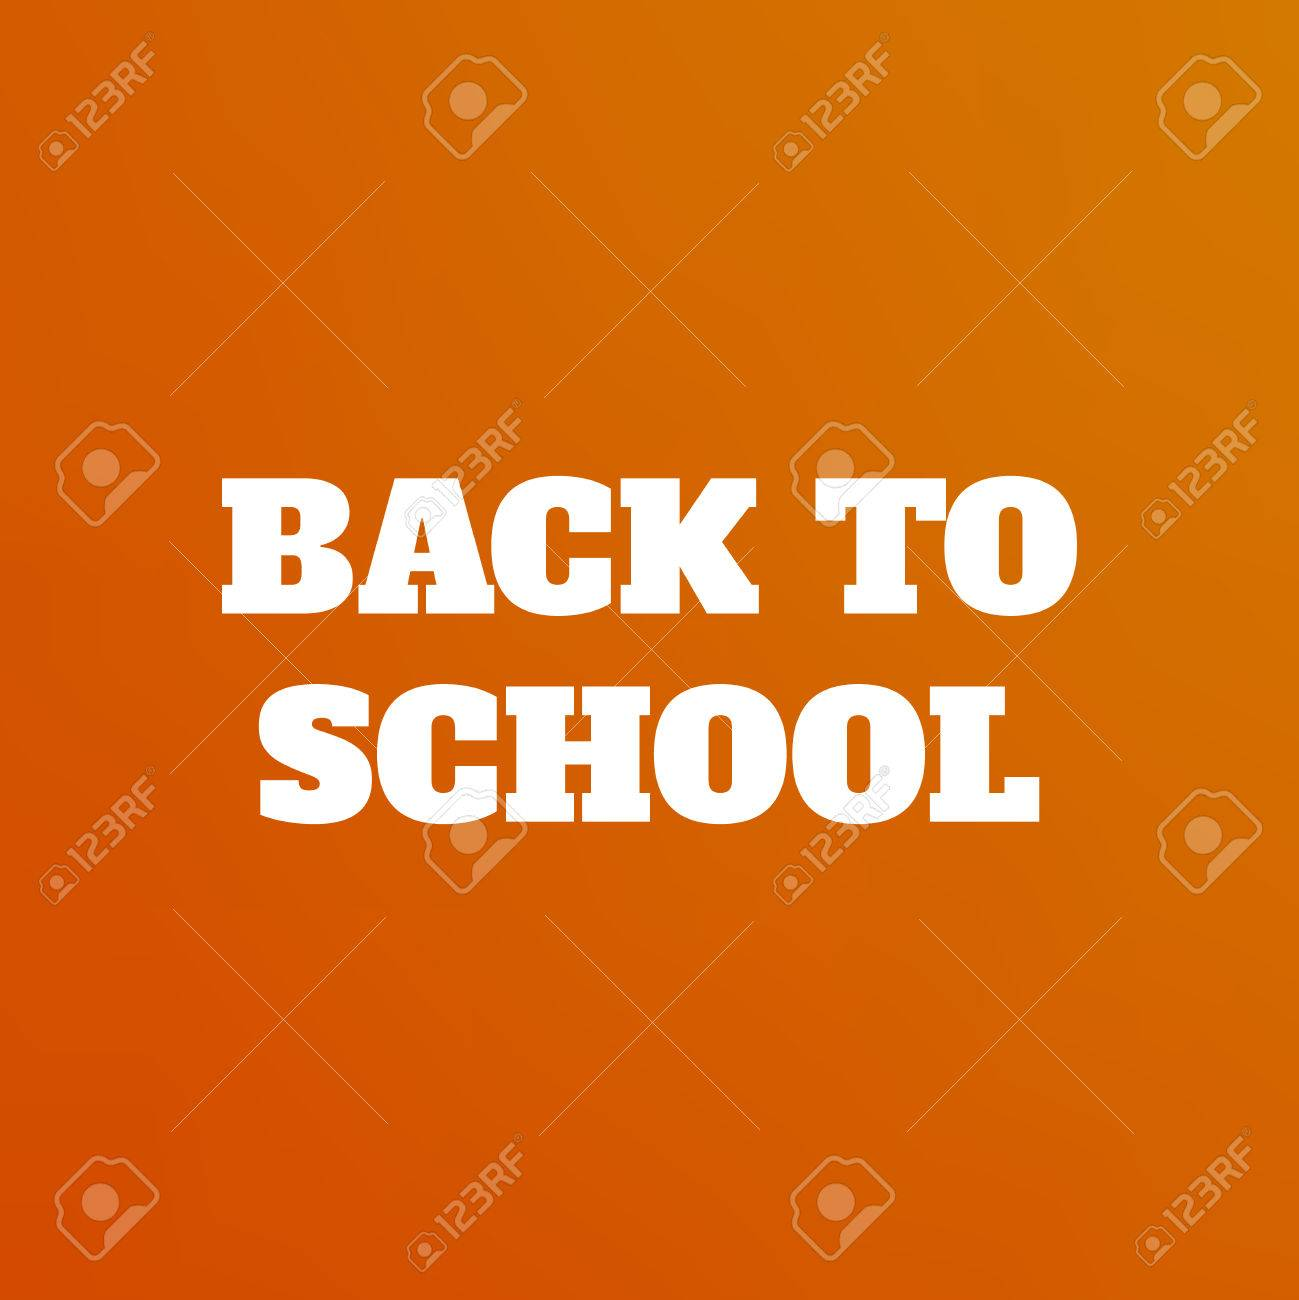 Poster design education - Back To School Poster Design Education Background Back To School Vector Stock Vector